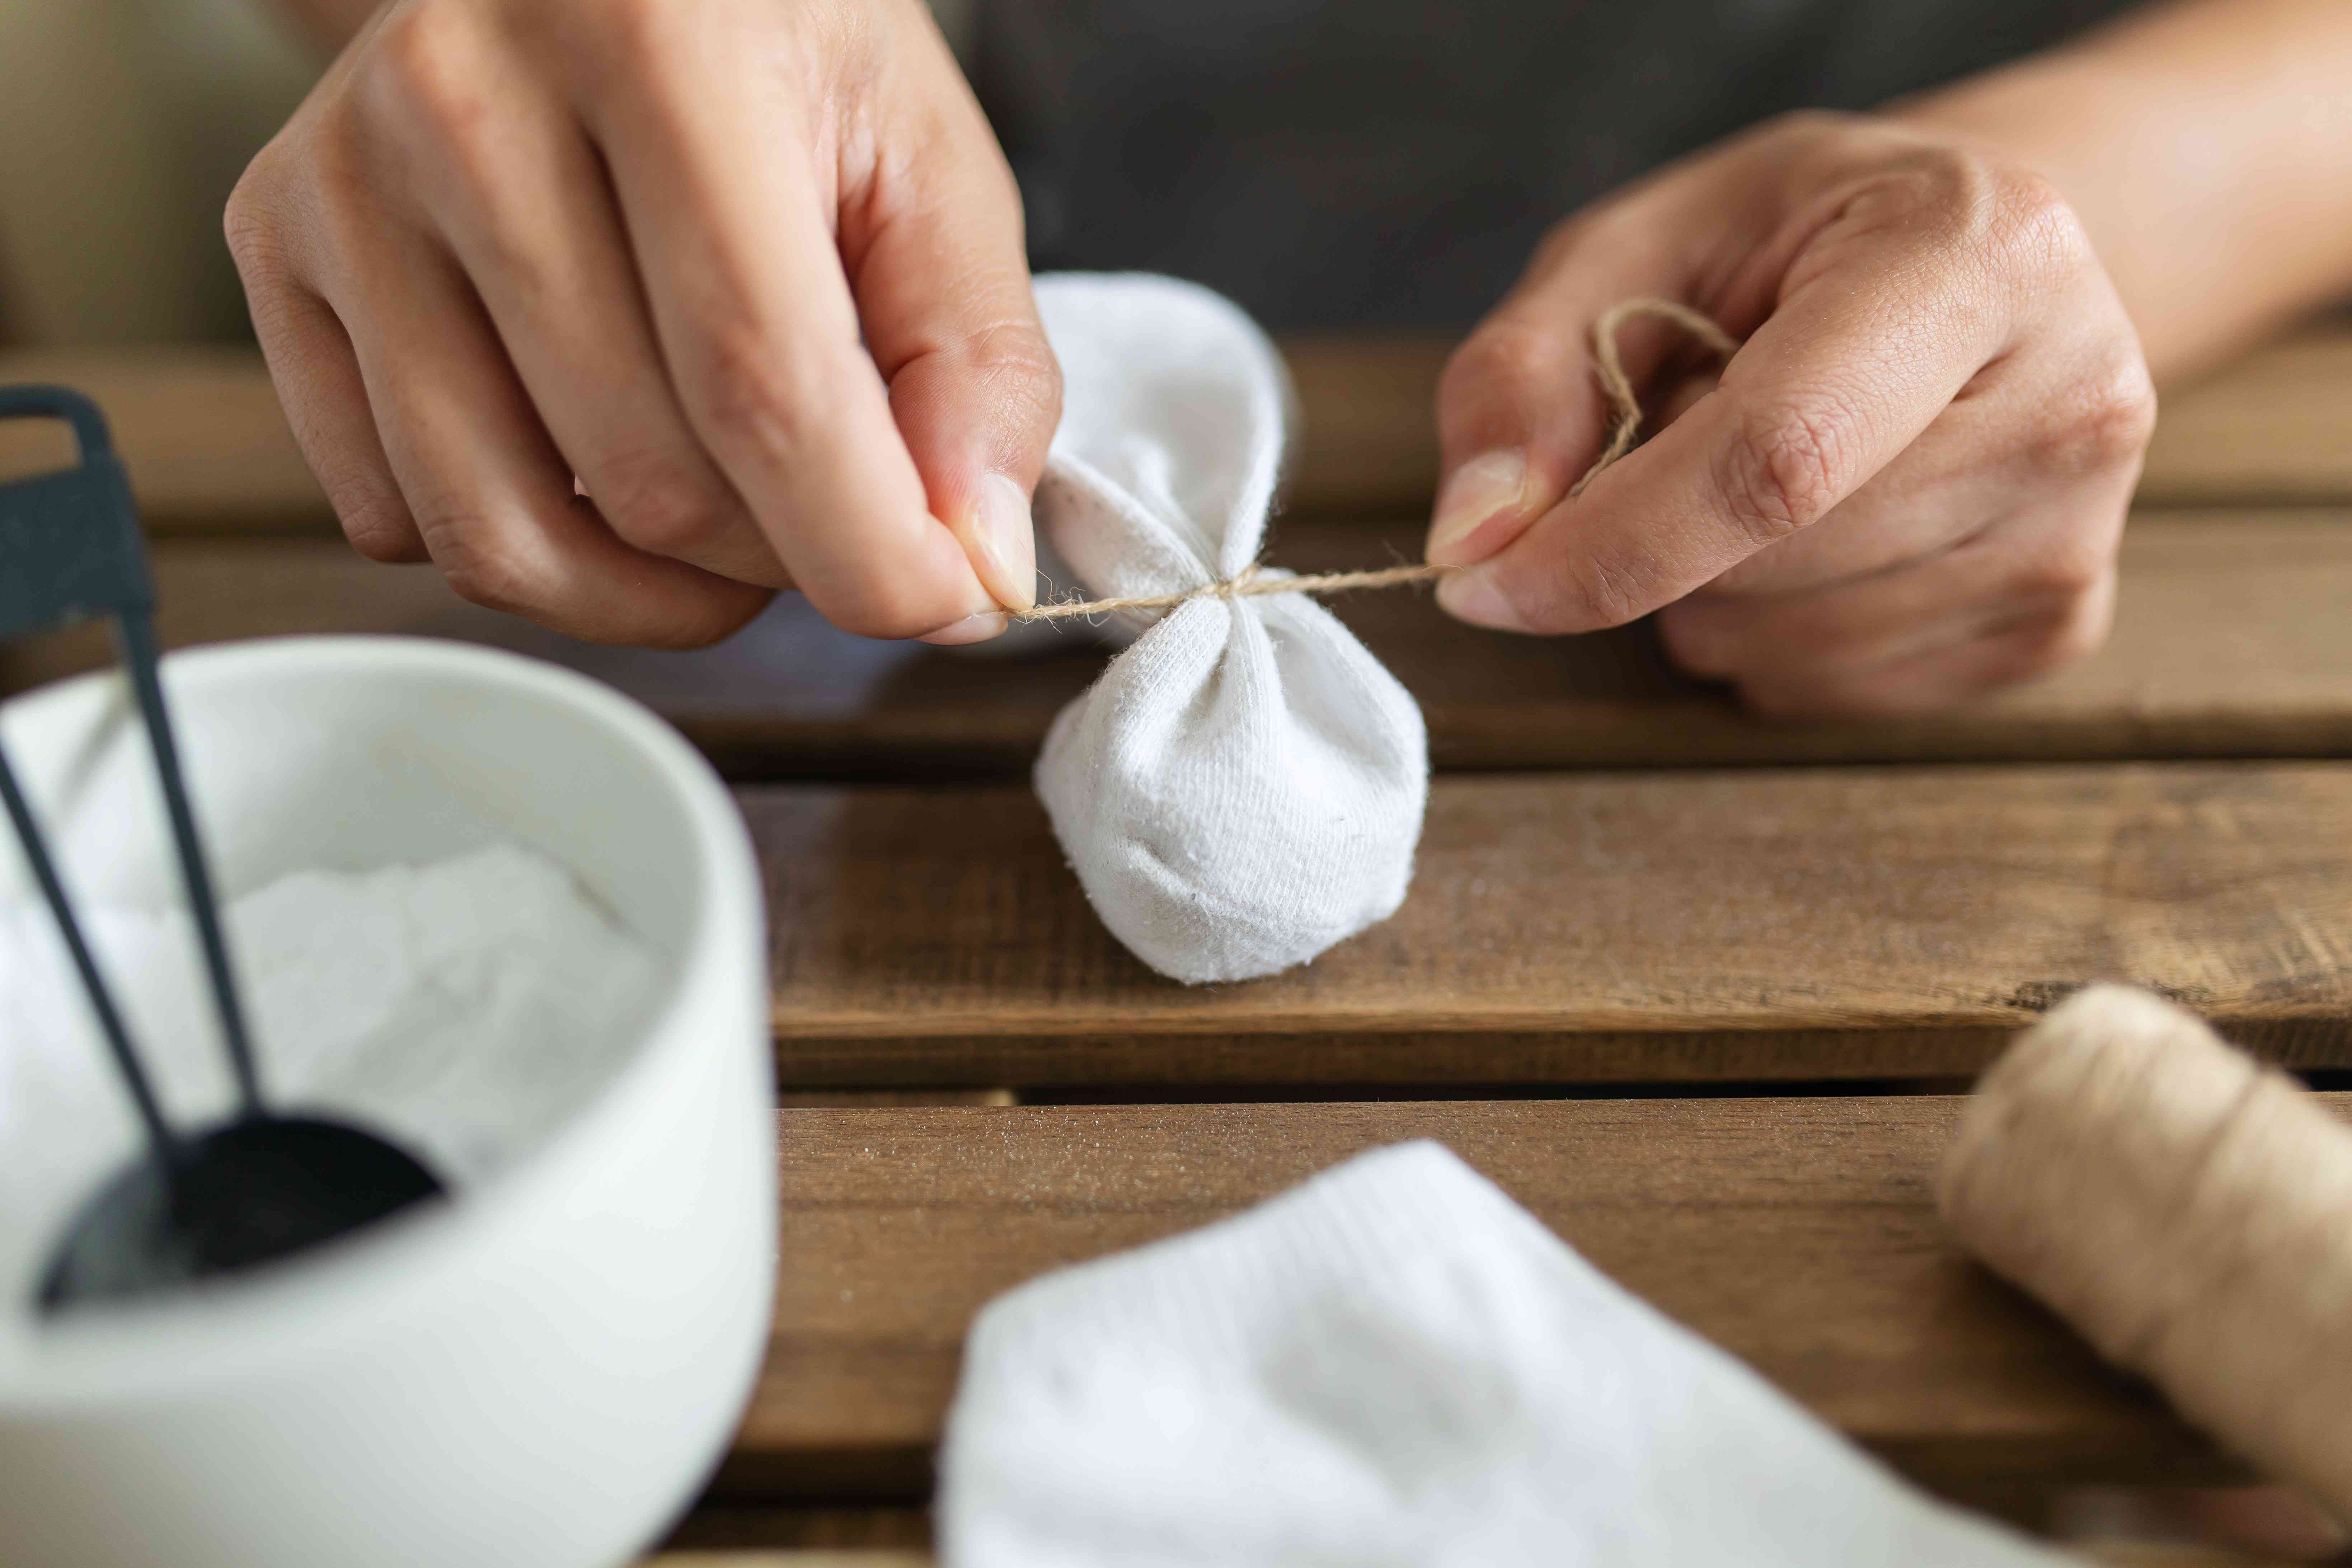 person using a string and sock to make baking soda sachets